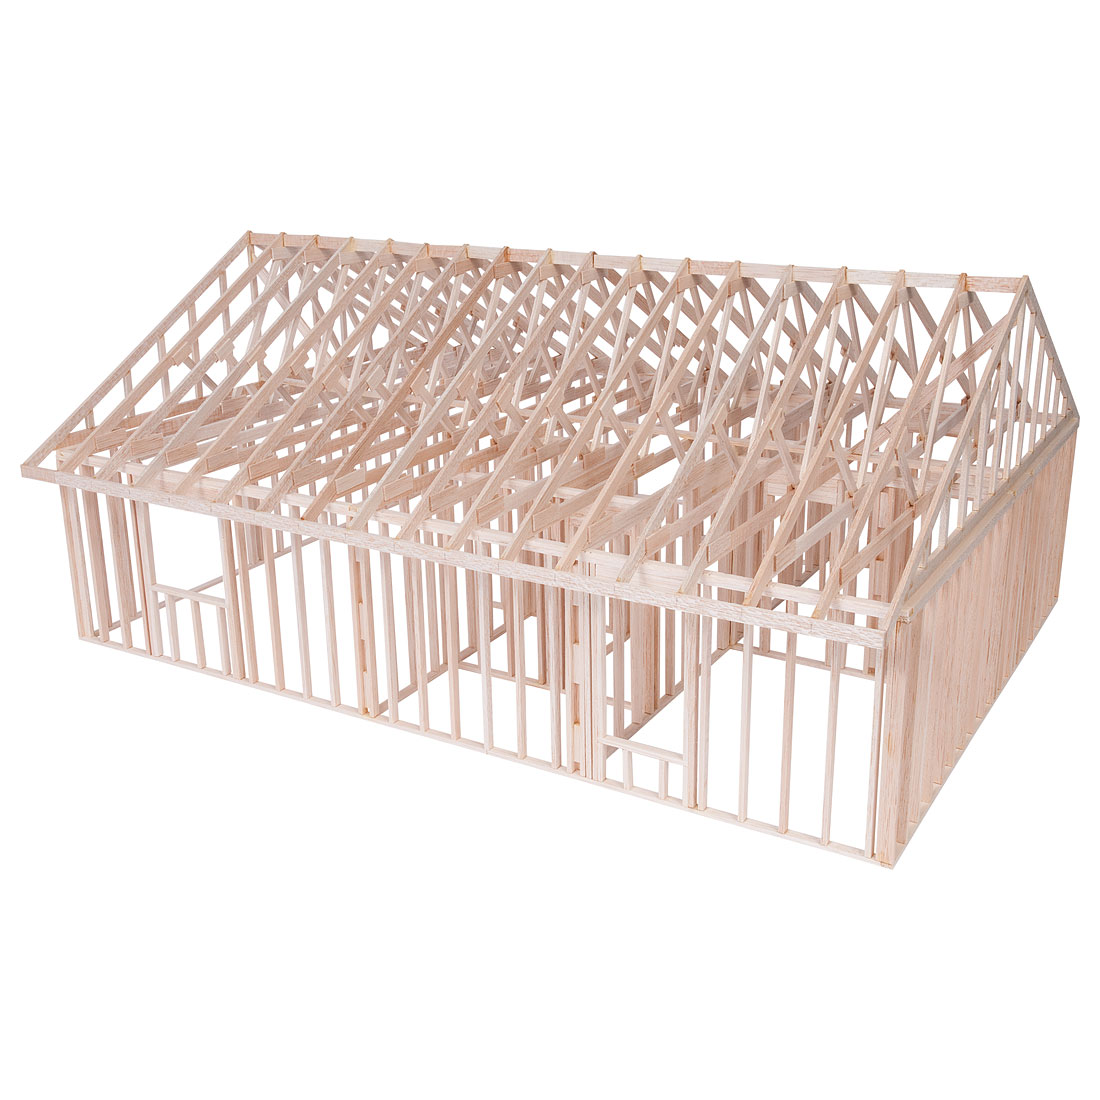 True scale house framing kit w36790 for A frame building kits